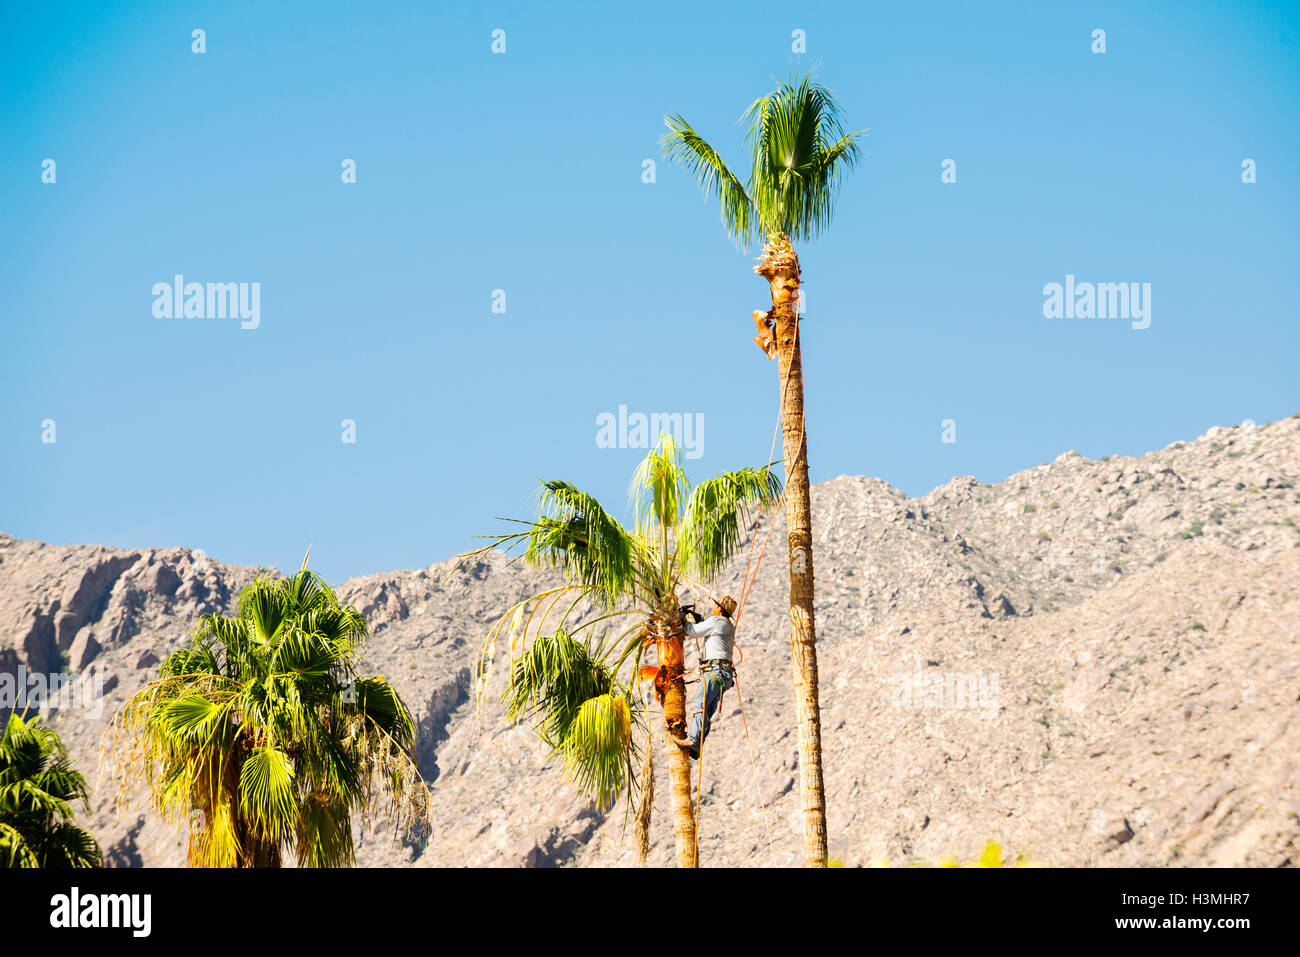 Man trimming palm tree in the California Desert - Stock Image